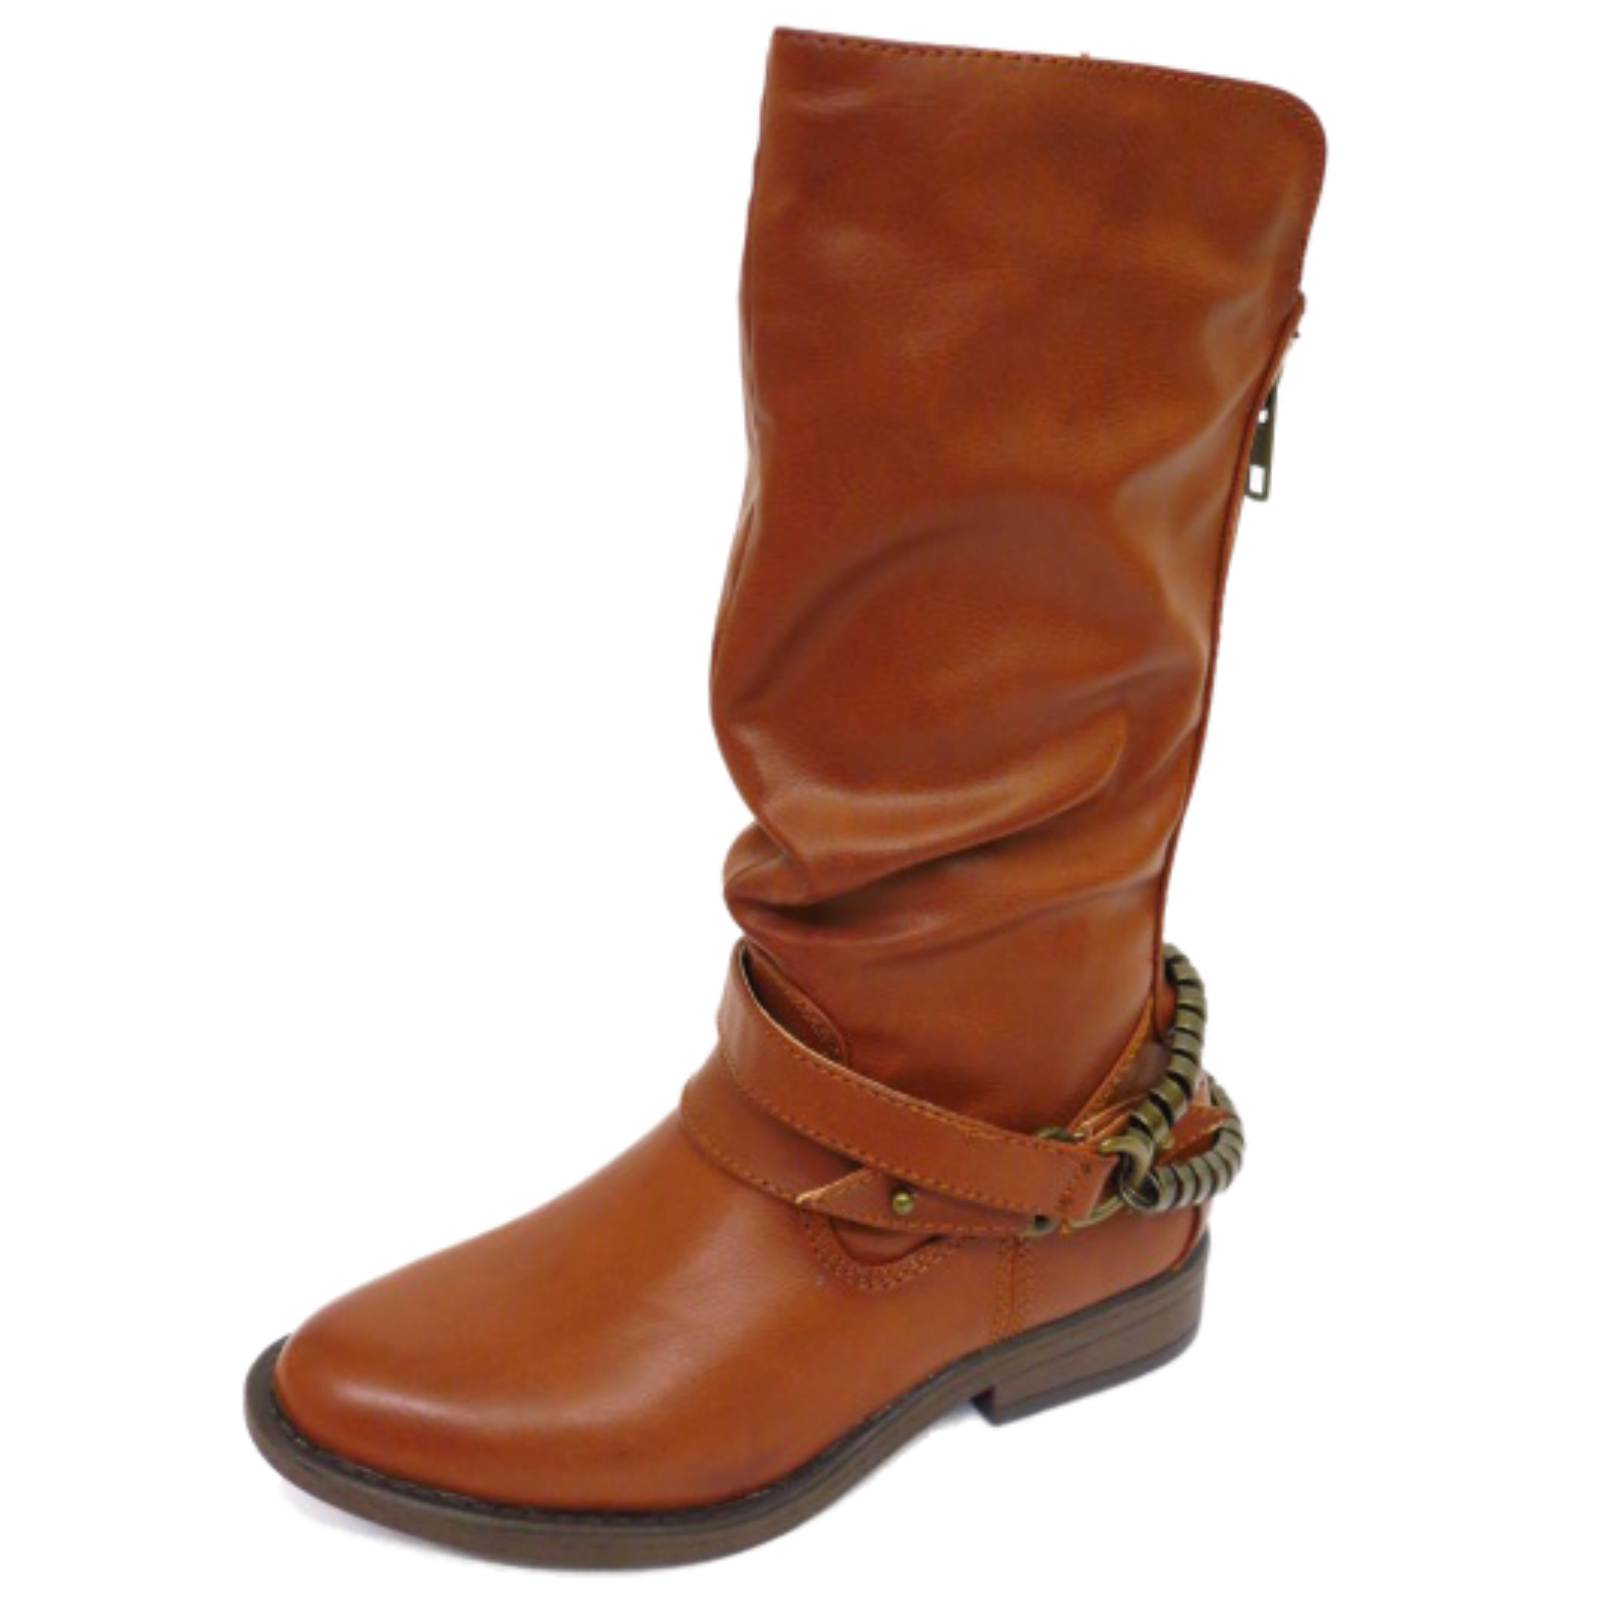 RUCHED COWBOY TALL KNEE-HIGH BOOTS UK